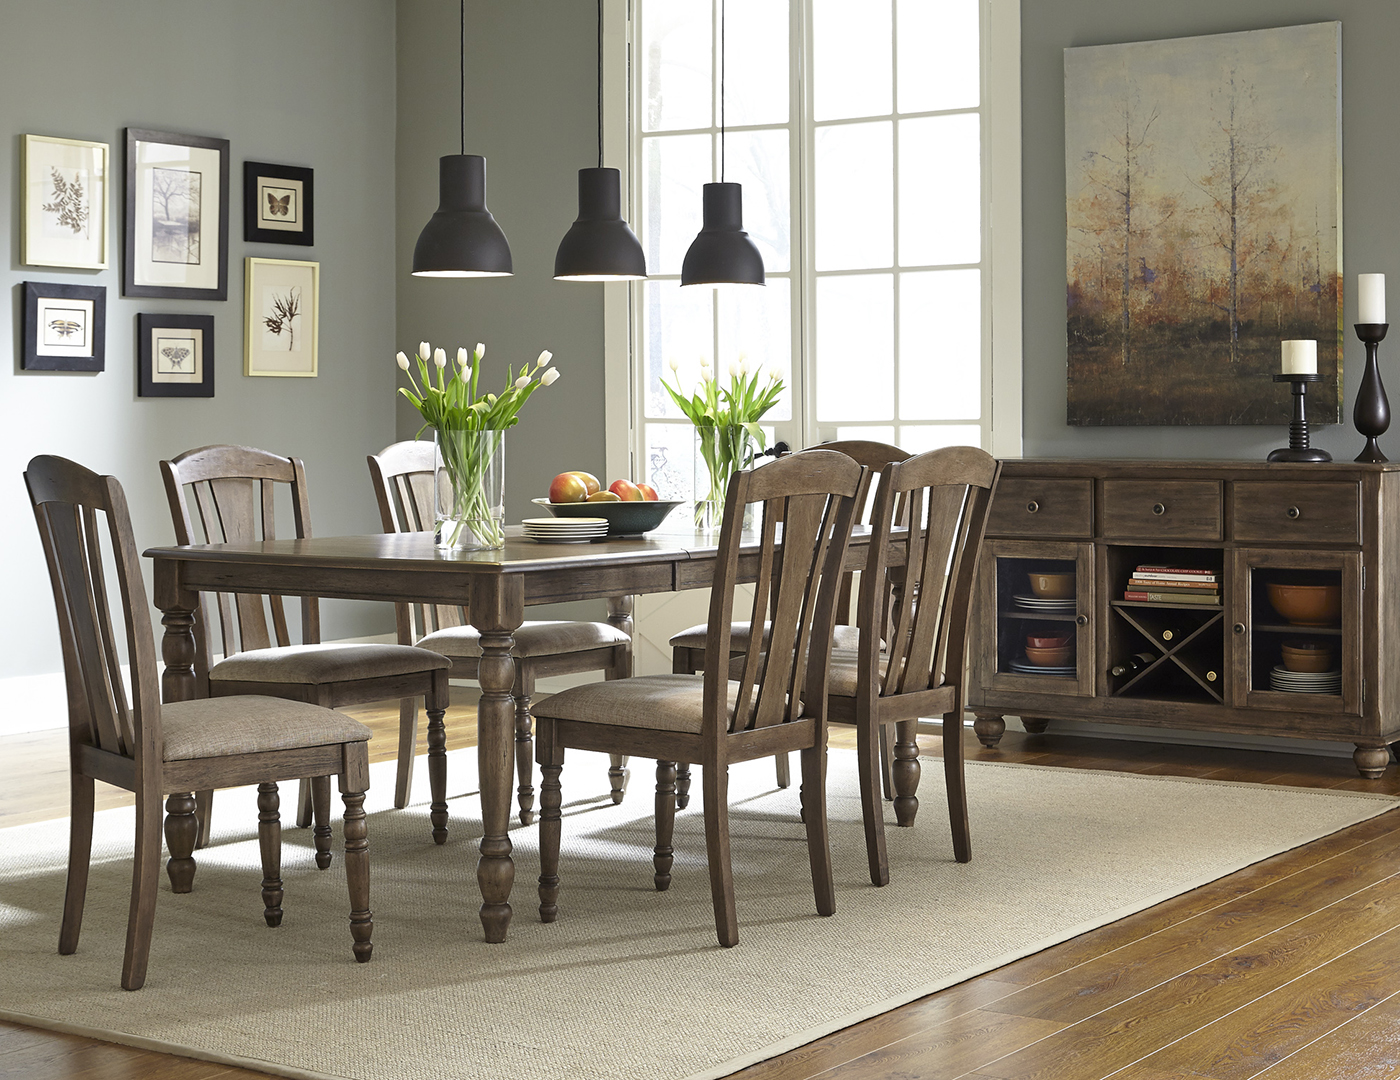 Candlewood 7-pc. Dining Set